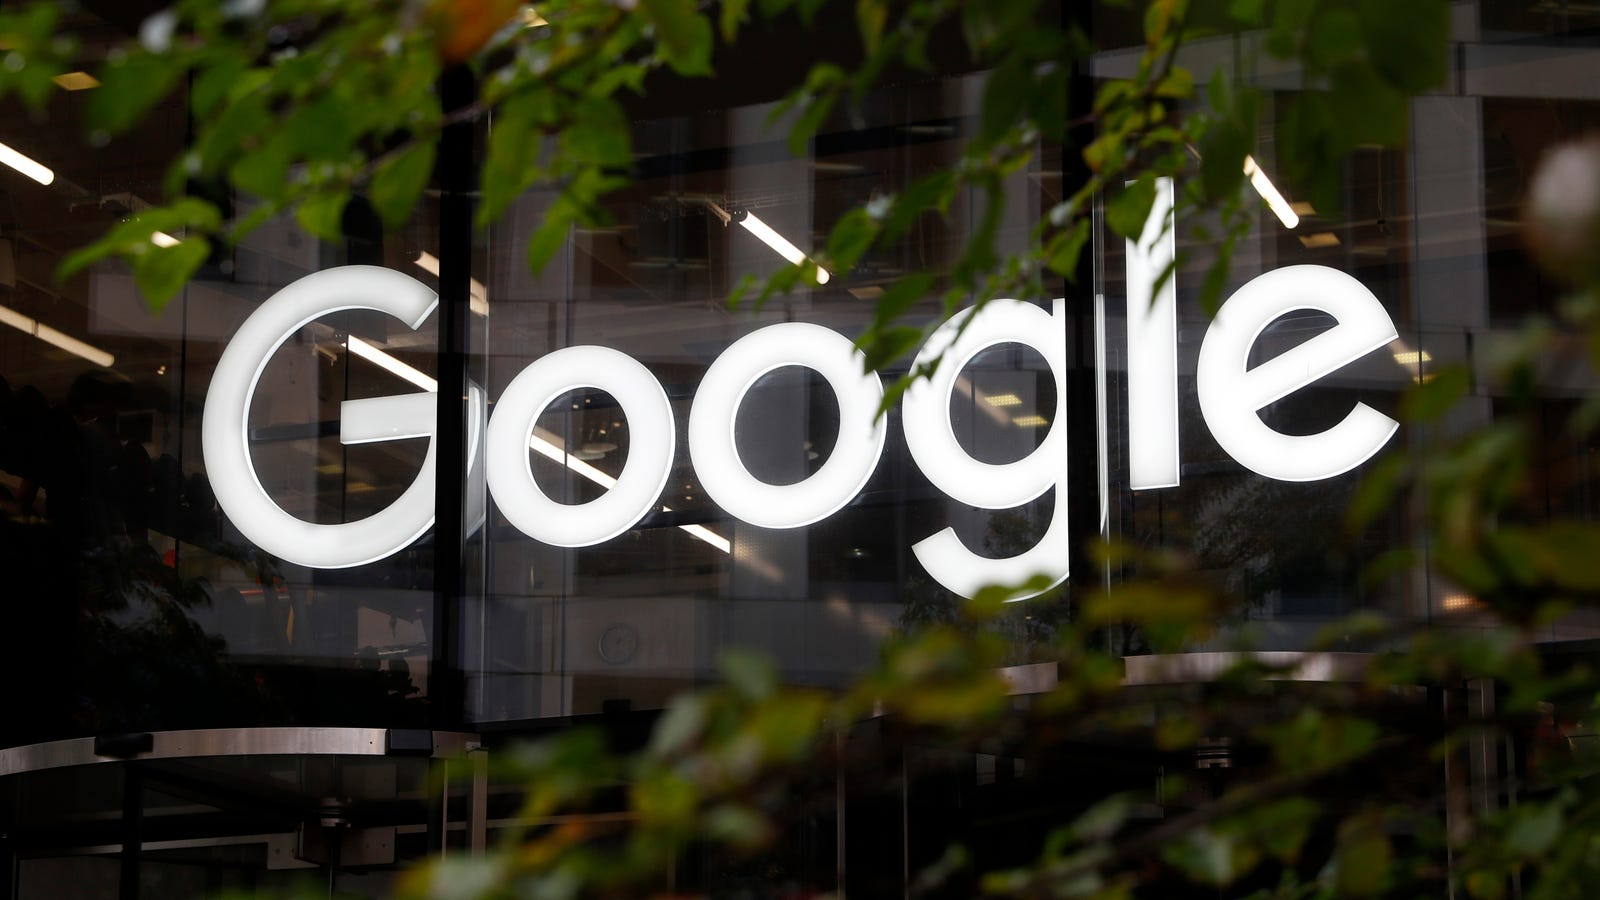 Report: Google News Does Not Have an Anti-Conservative Bias So Much as a Pro-Credible Source One